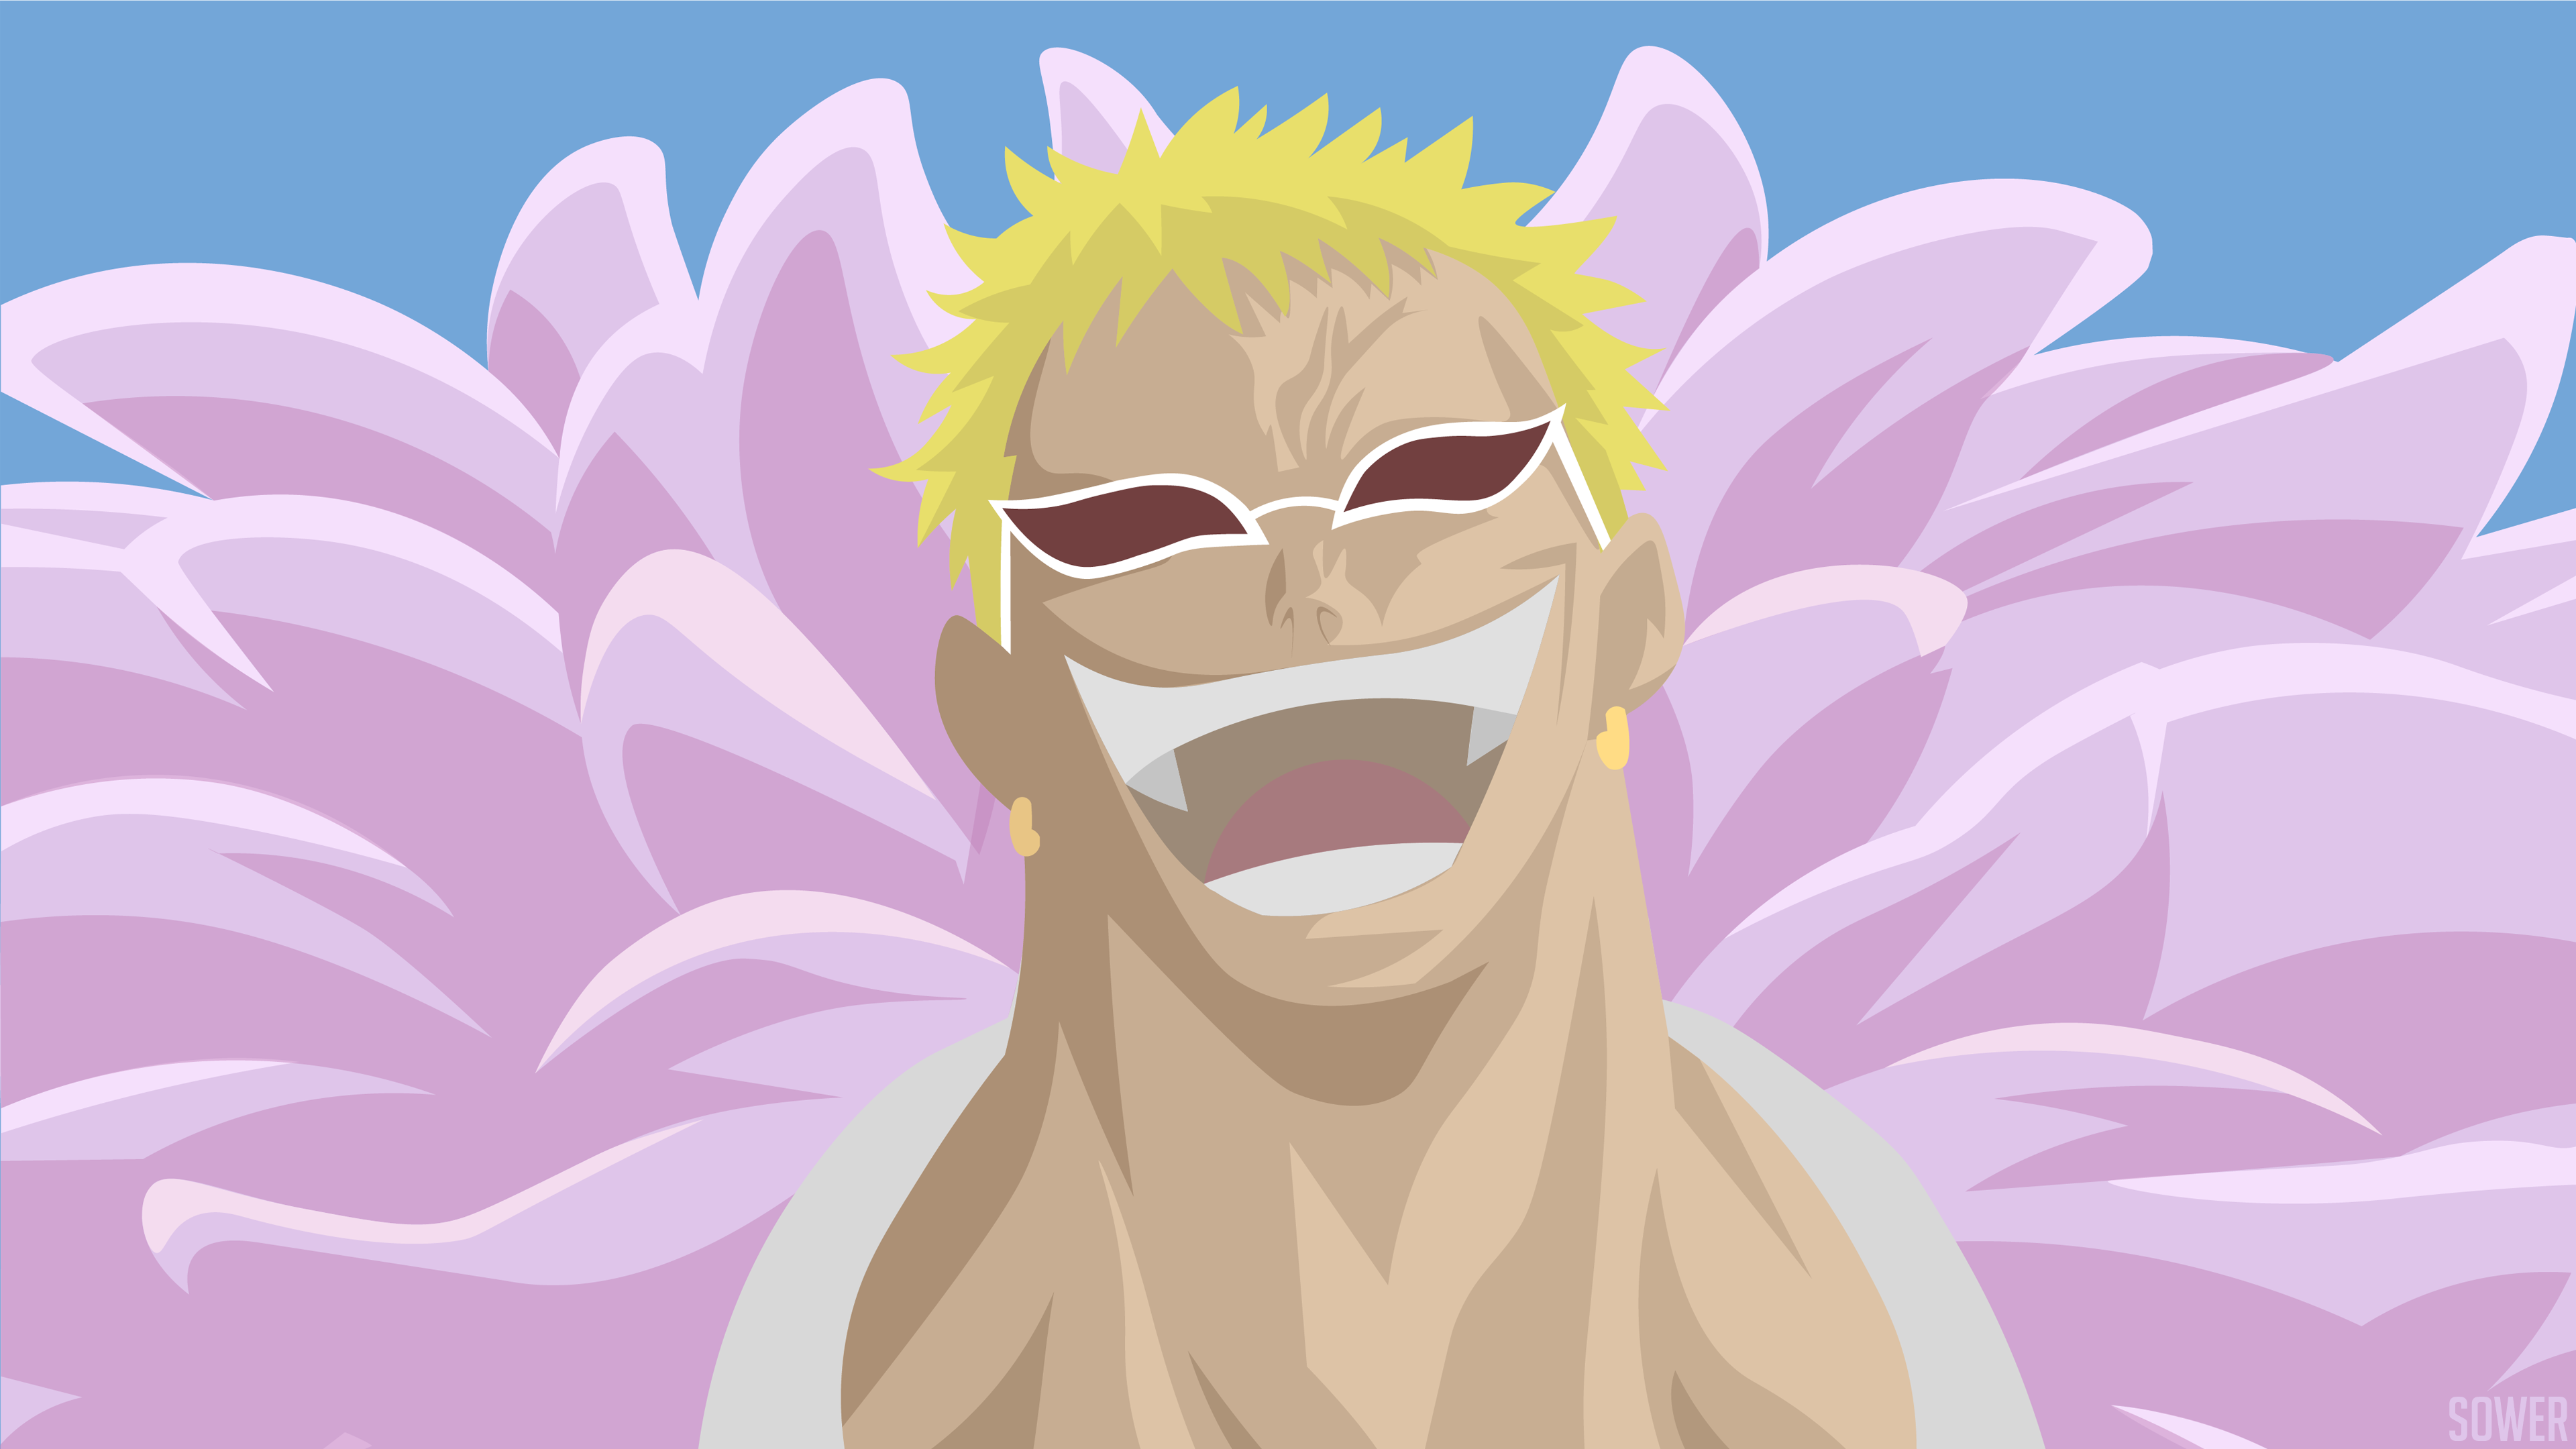 Doflamingo Wallpaper Hd Posted By Ethan Peltier